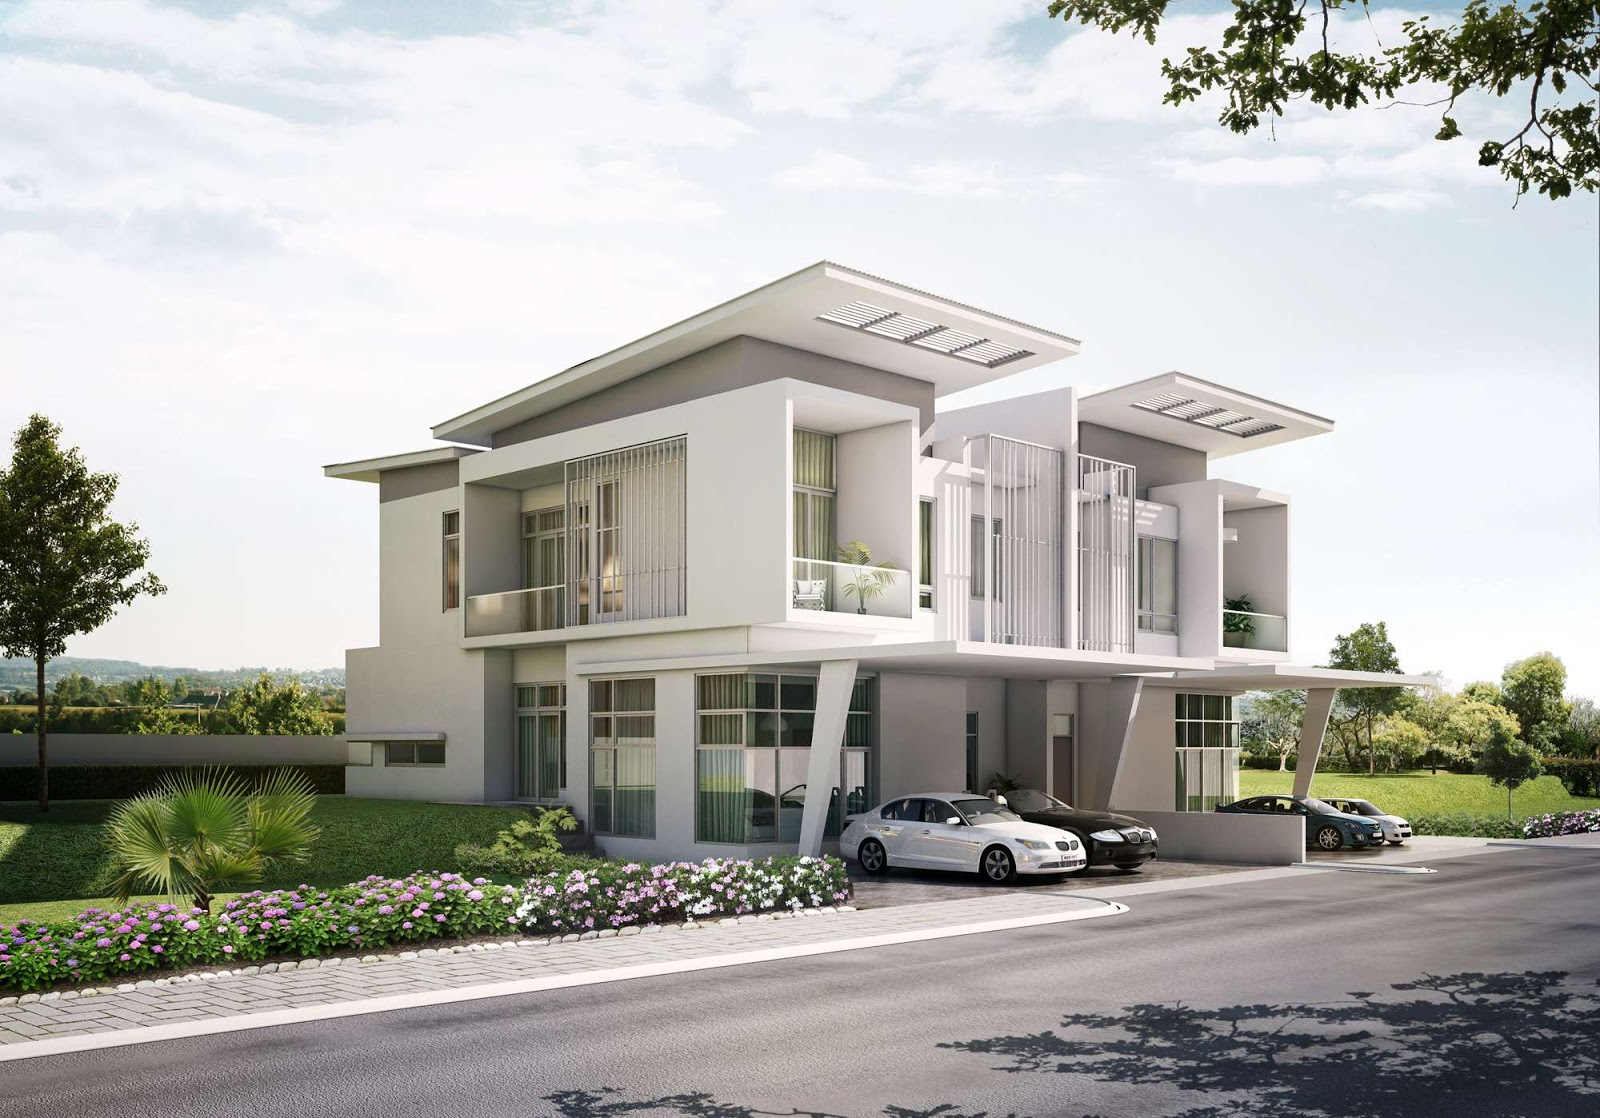 New home designs latest singapore modern homes exterior for Latest window designs for house